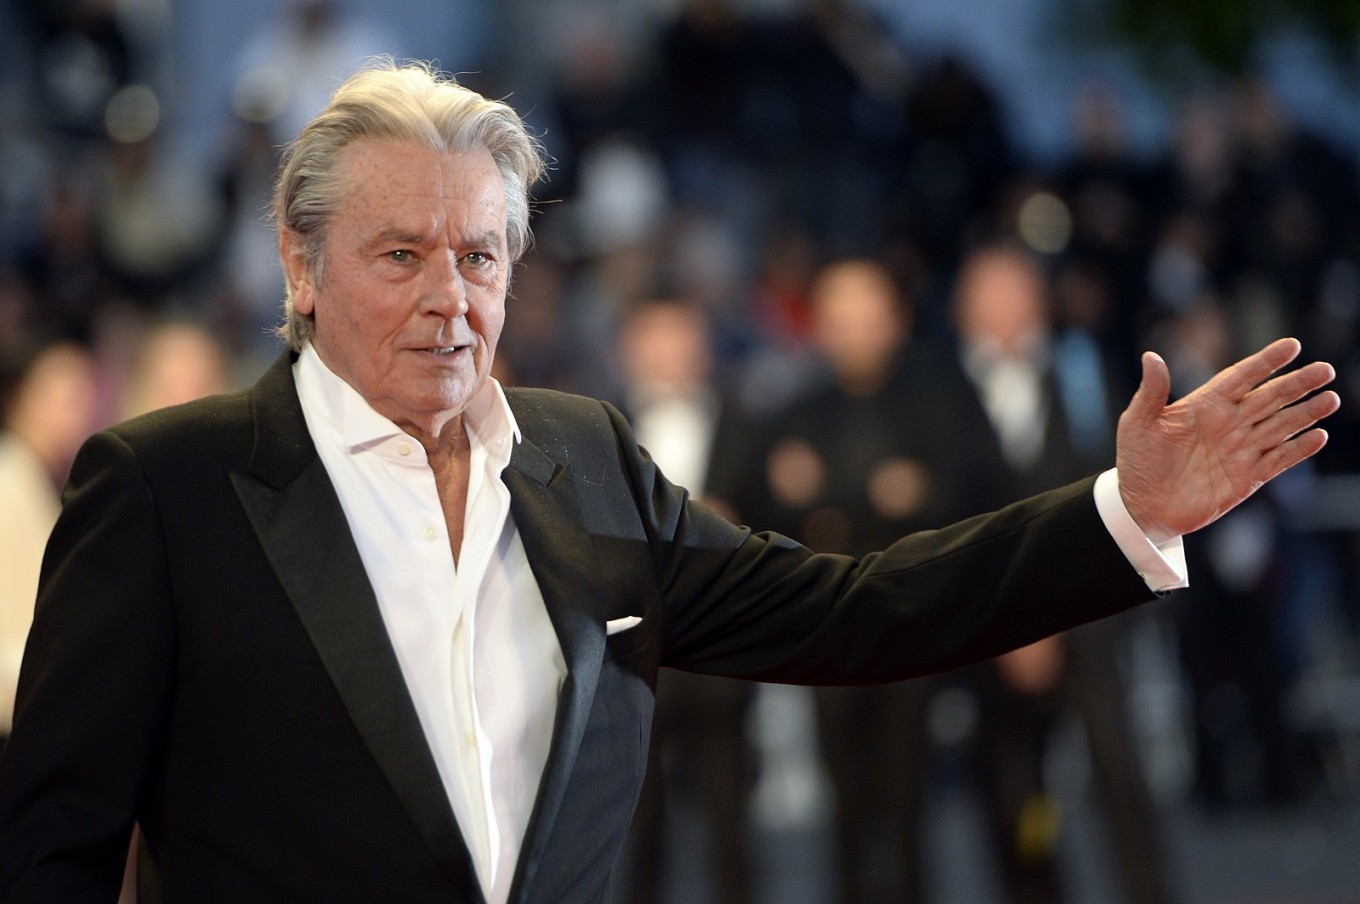 Cannes Film Festival defends award to 'imperfect' Delon